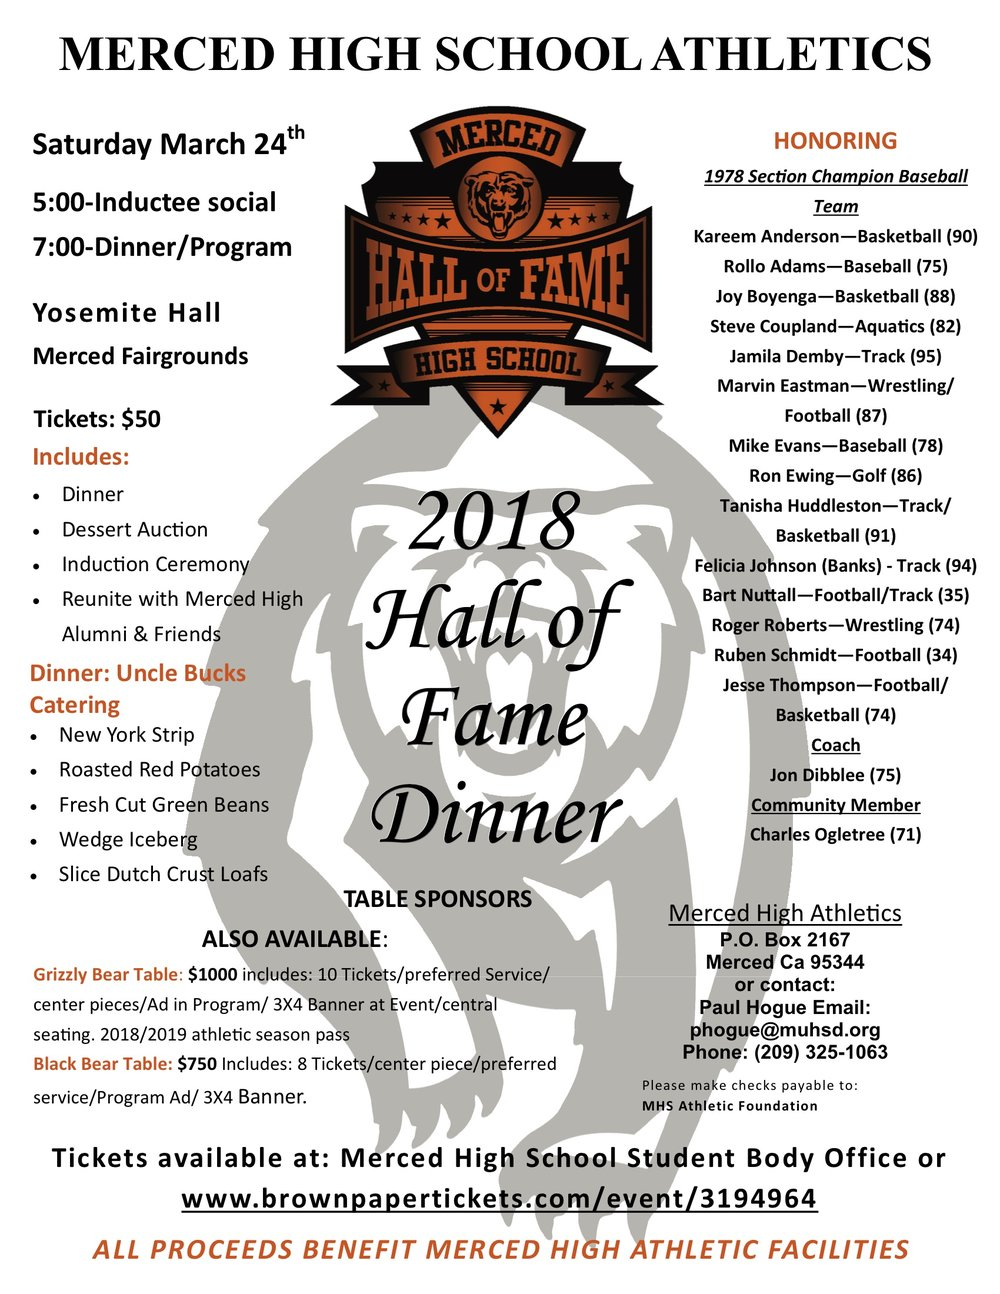 2018 HALL OF FAME FLYER.jpg